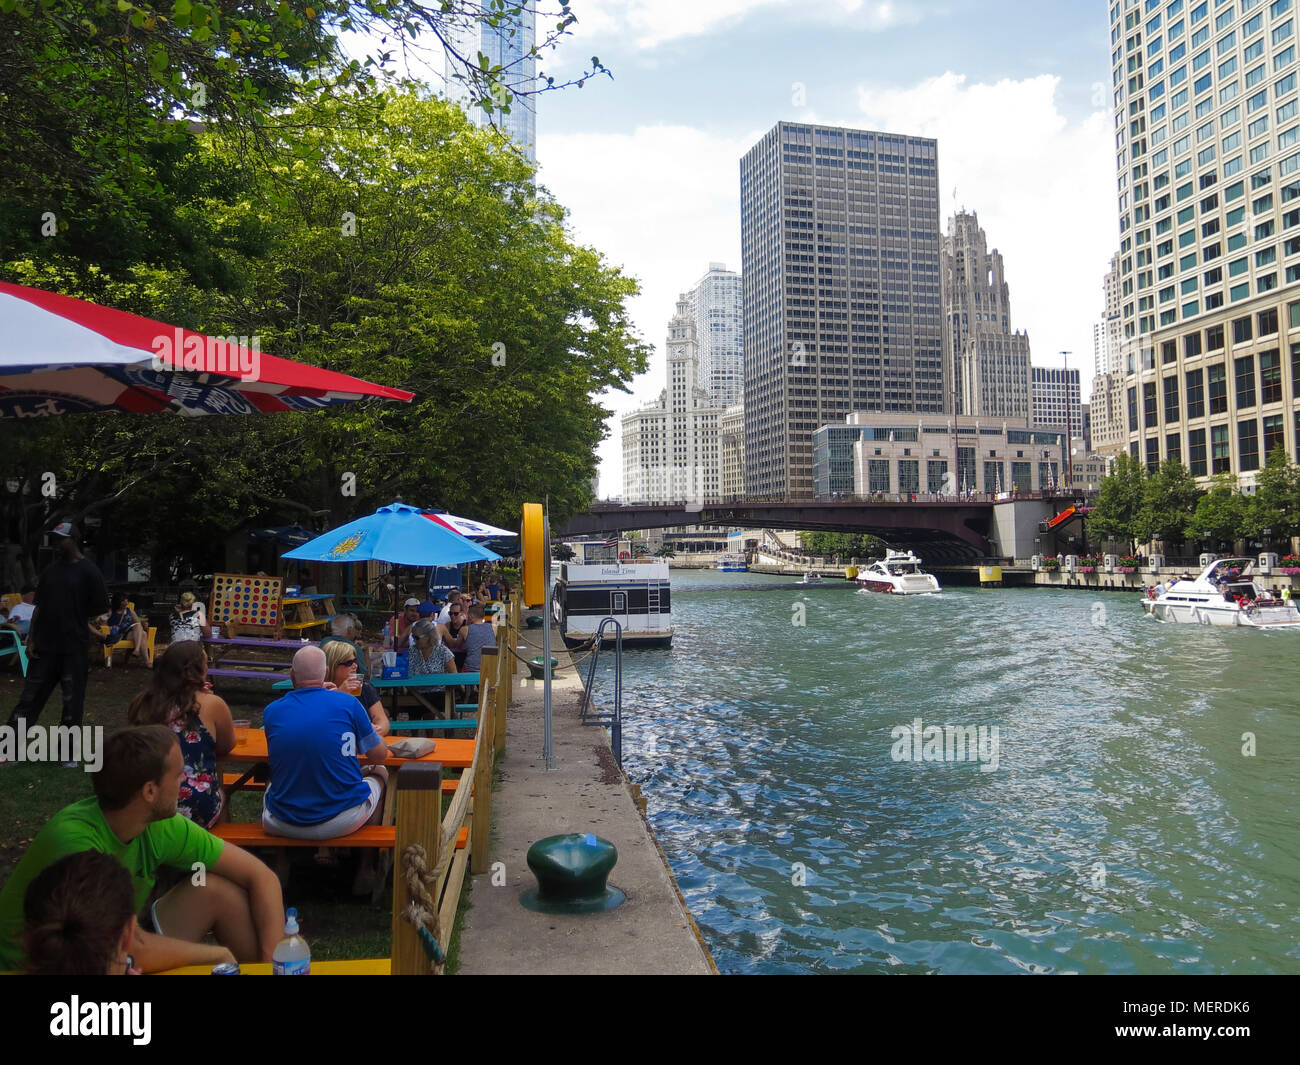 Cafe at Chicago River, Chicago, Illinois, USA Stock Photo